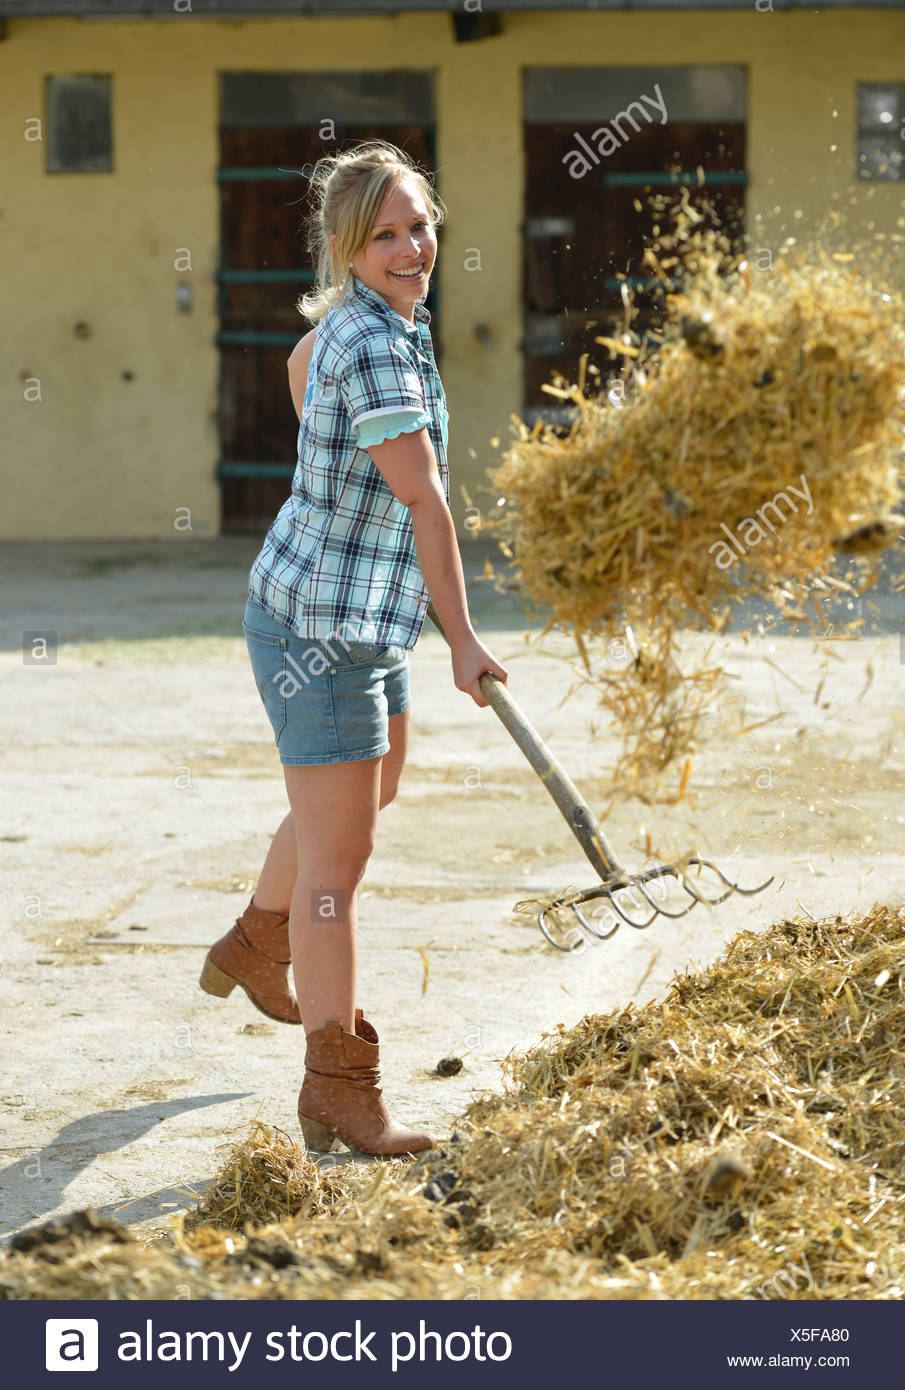 Young female farmer, pitchfork, horse manure, cleaning out with gusto, Gingen, Baden-Wuerttemberg, Germany, Europe Stock Photo